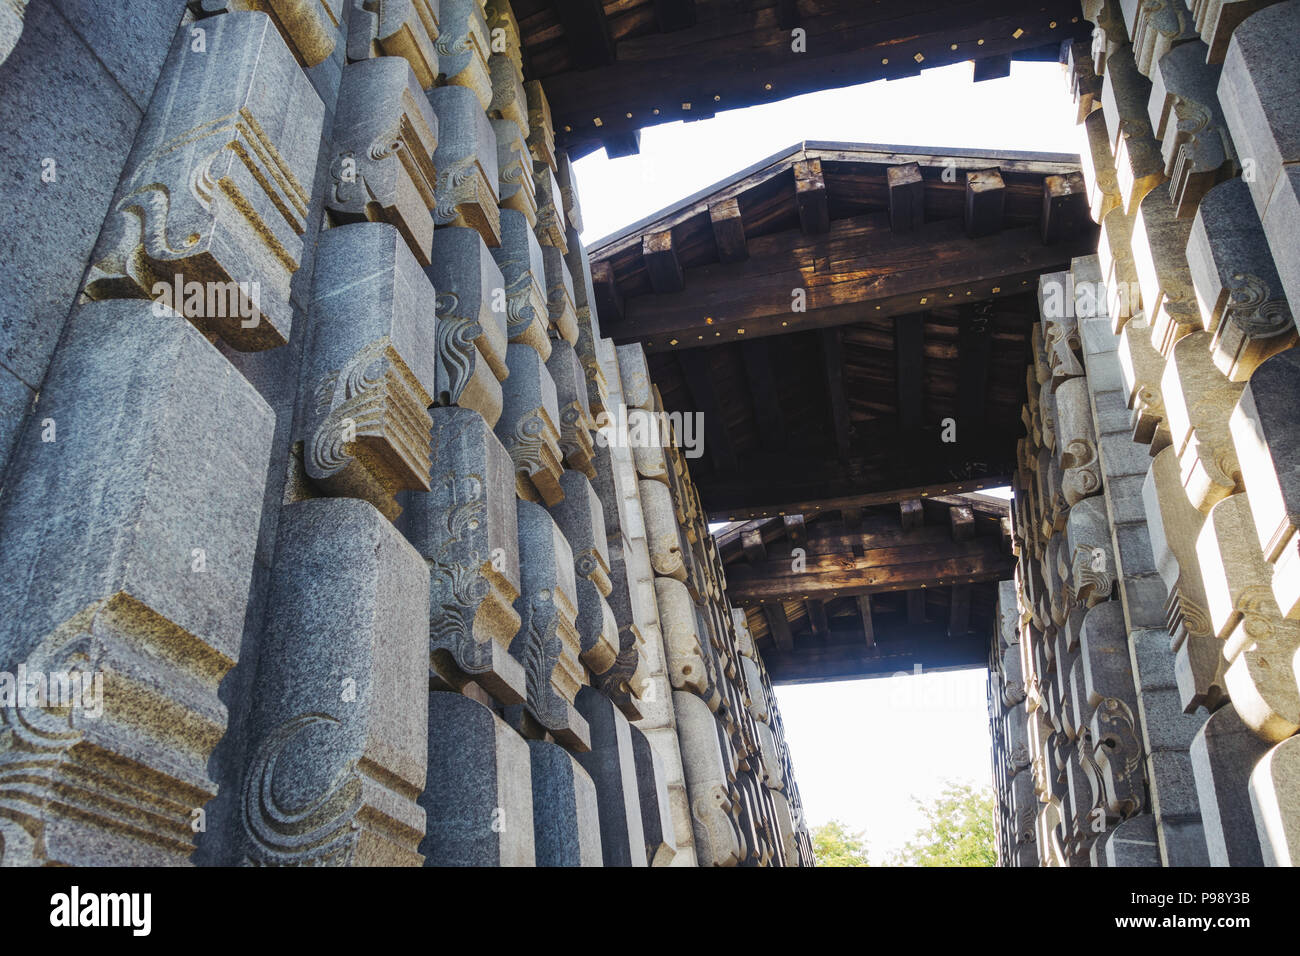 the dark concrete slabs of the Yugoslav-era Mausoleum of Struggle and Victory, Čačak, Serbia Stock Photo